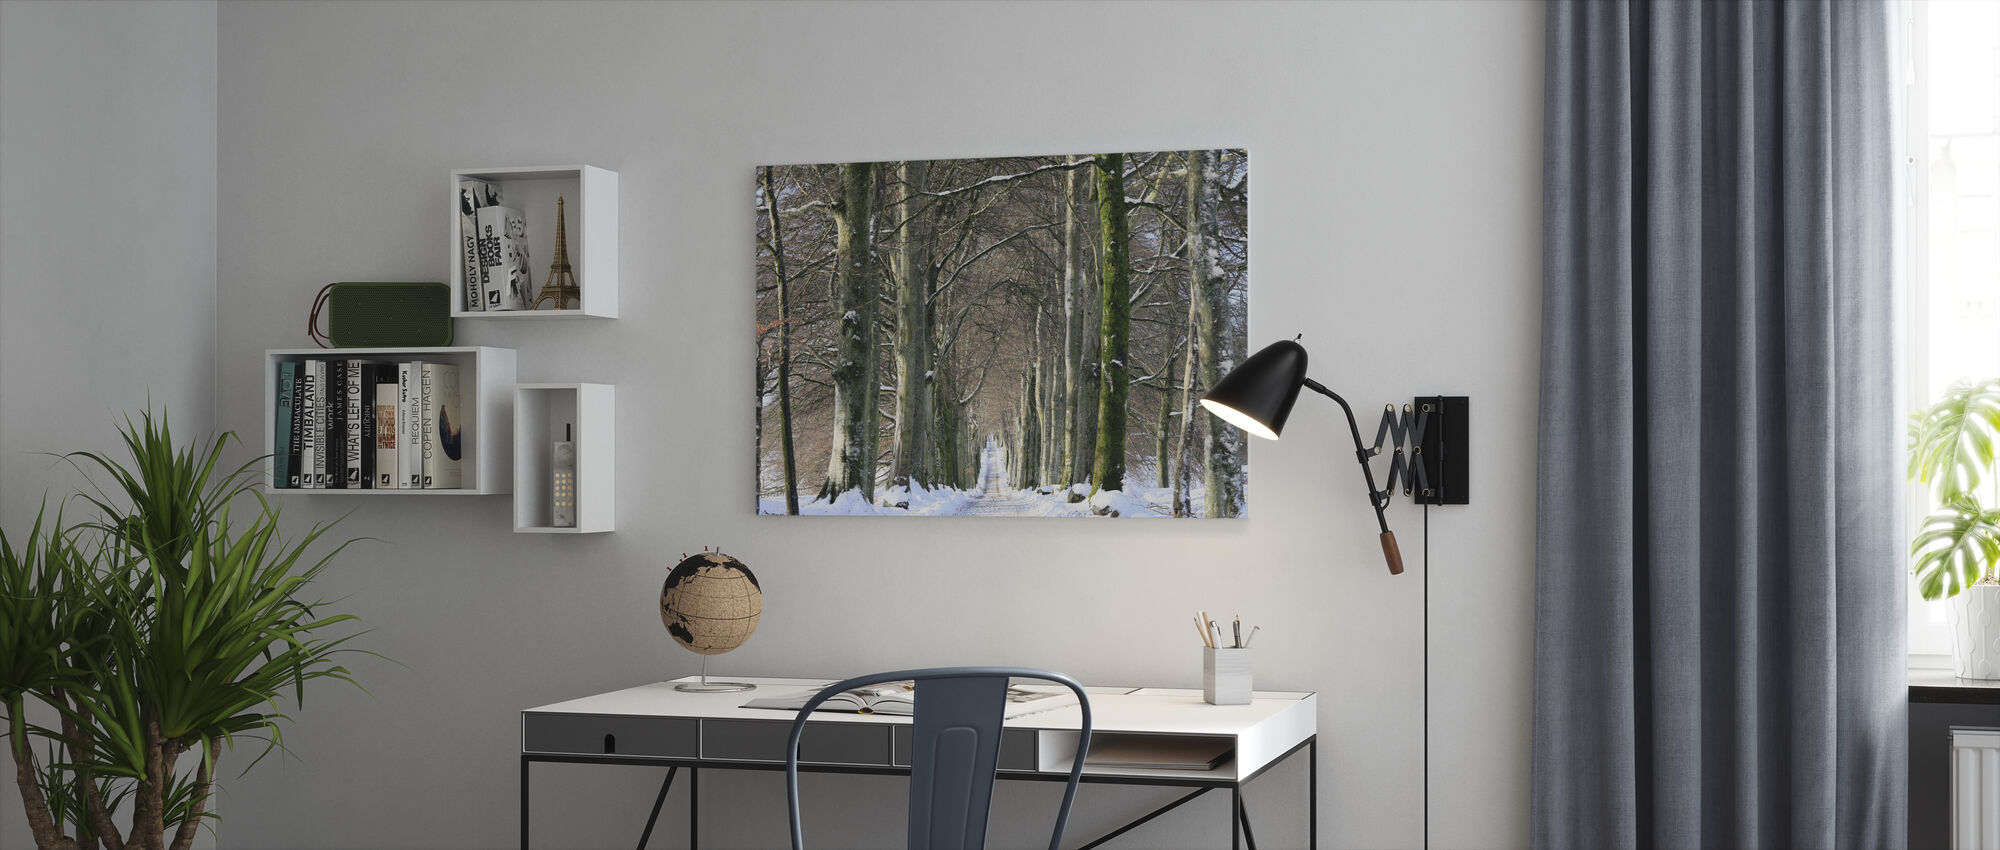 Snowy Tree-lined Avenue - Canvas print - Office